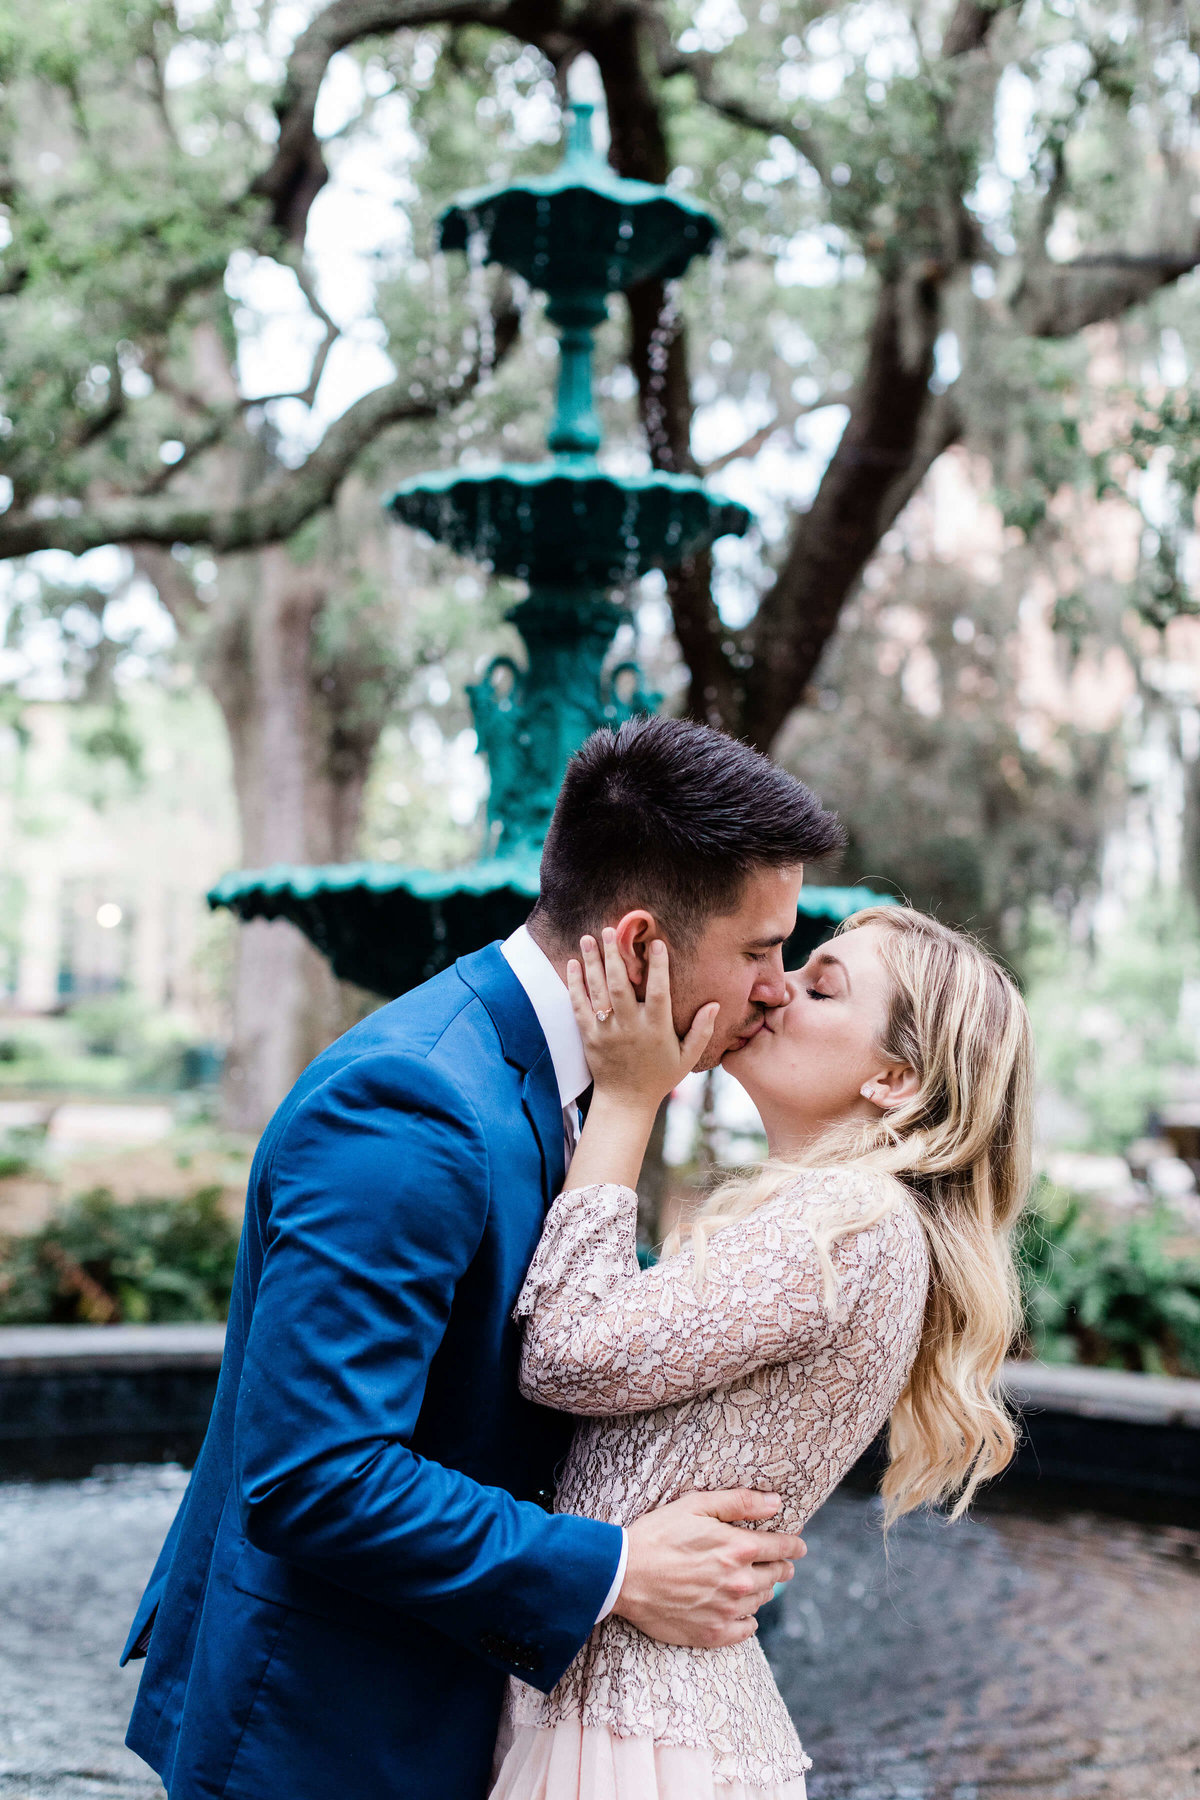 apt-b-photography-savannah-surprise-proposal-photographer-engagement-proposal-photography-16